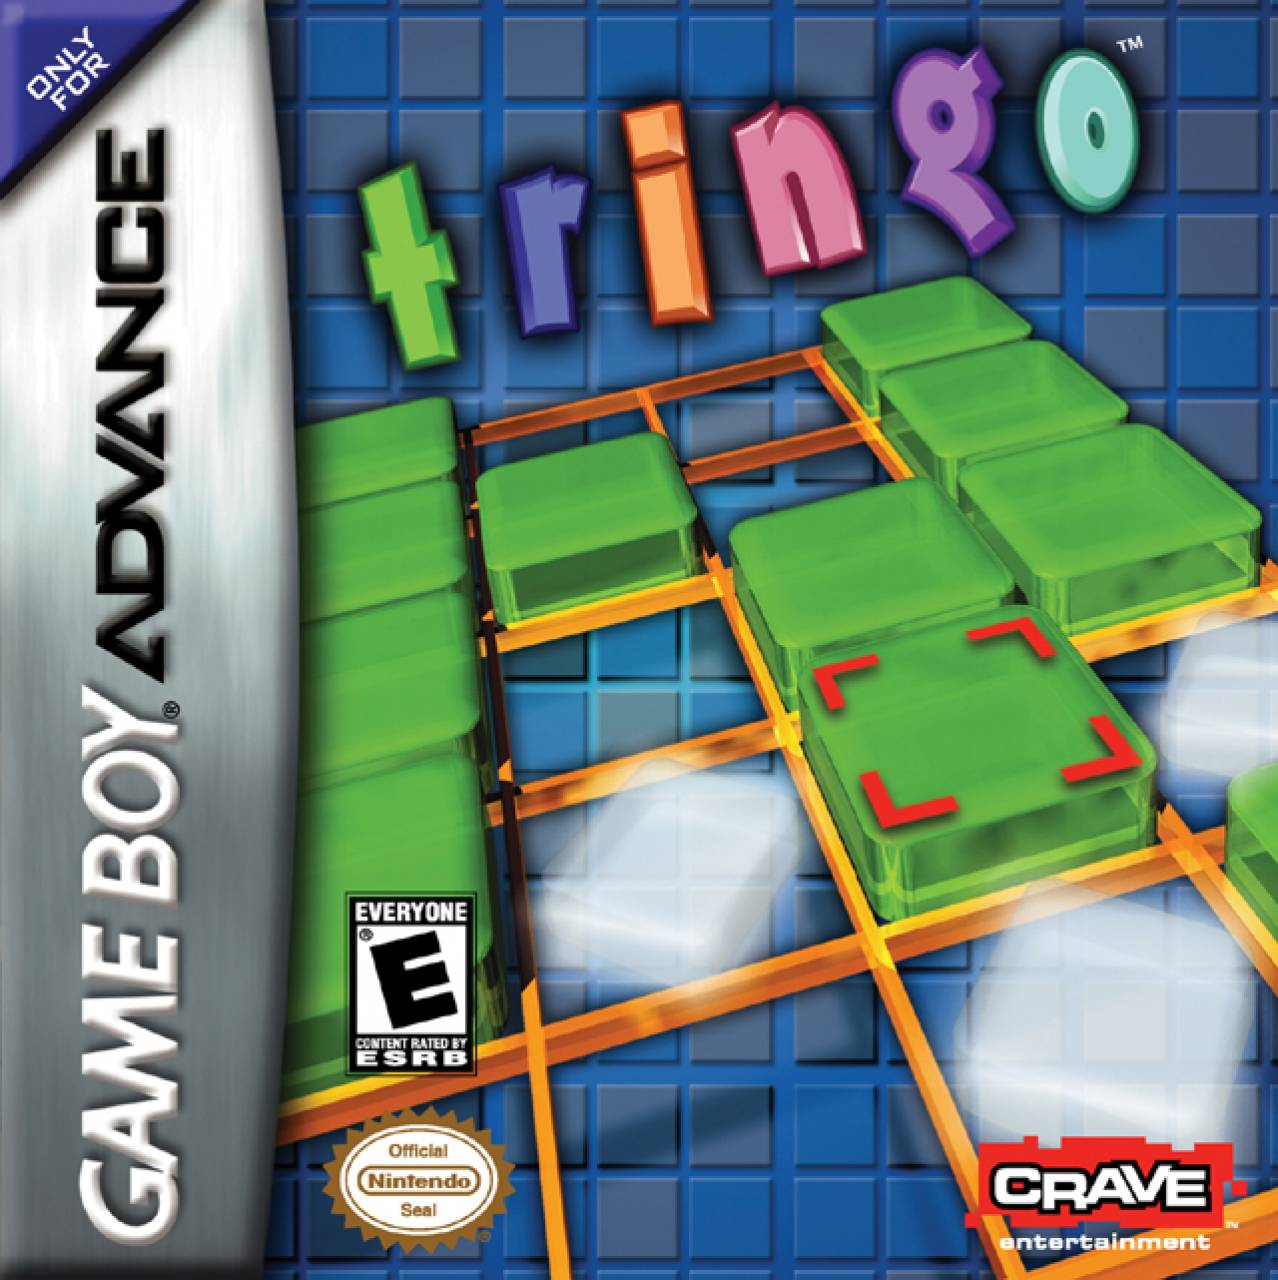 Gameboy color roms for free - Gameboy Advancenet Download Gba Roms